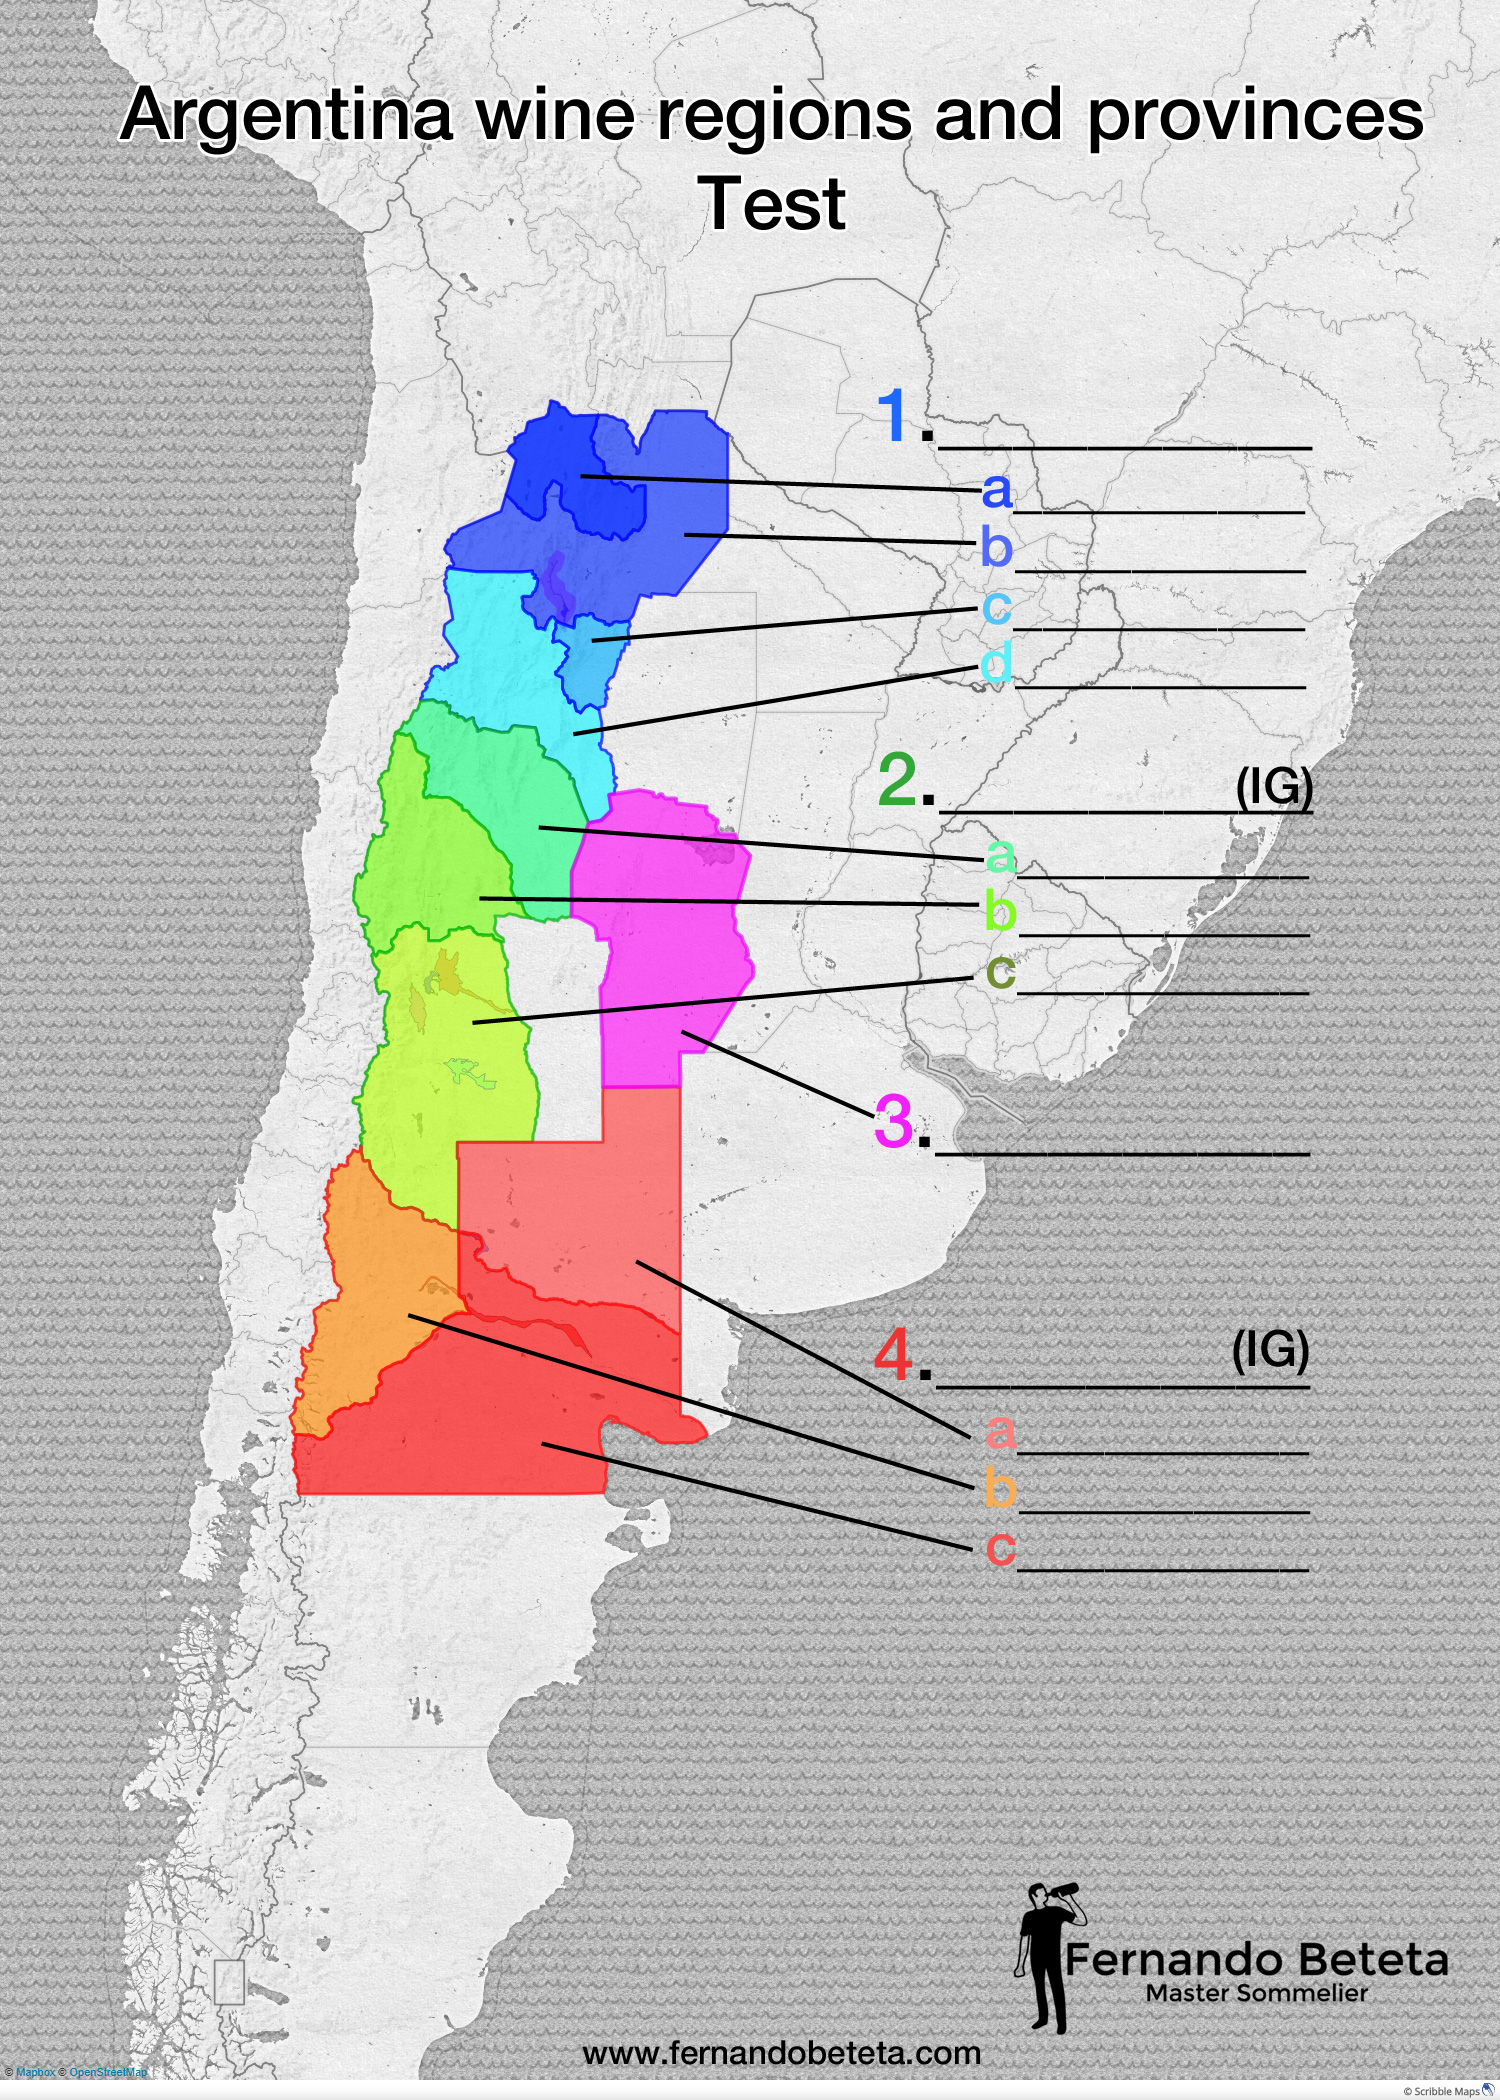 Argentina-Overview-Map-Test.jpg